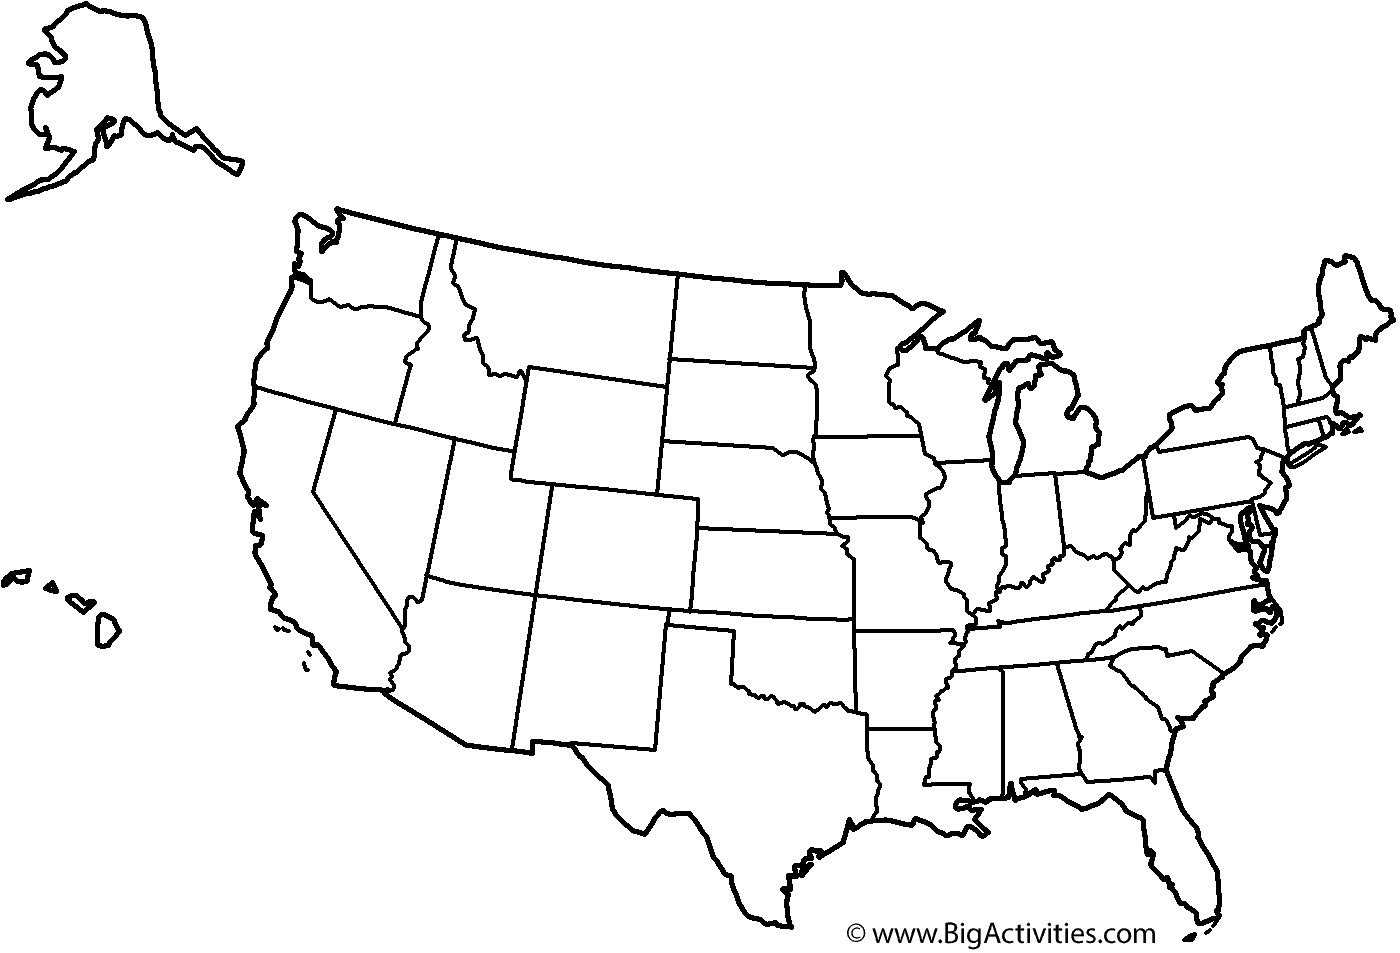 United States Coloring Pages For Kids  Map of the United States with theme and states Coloring